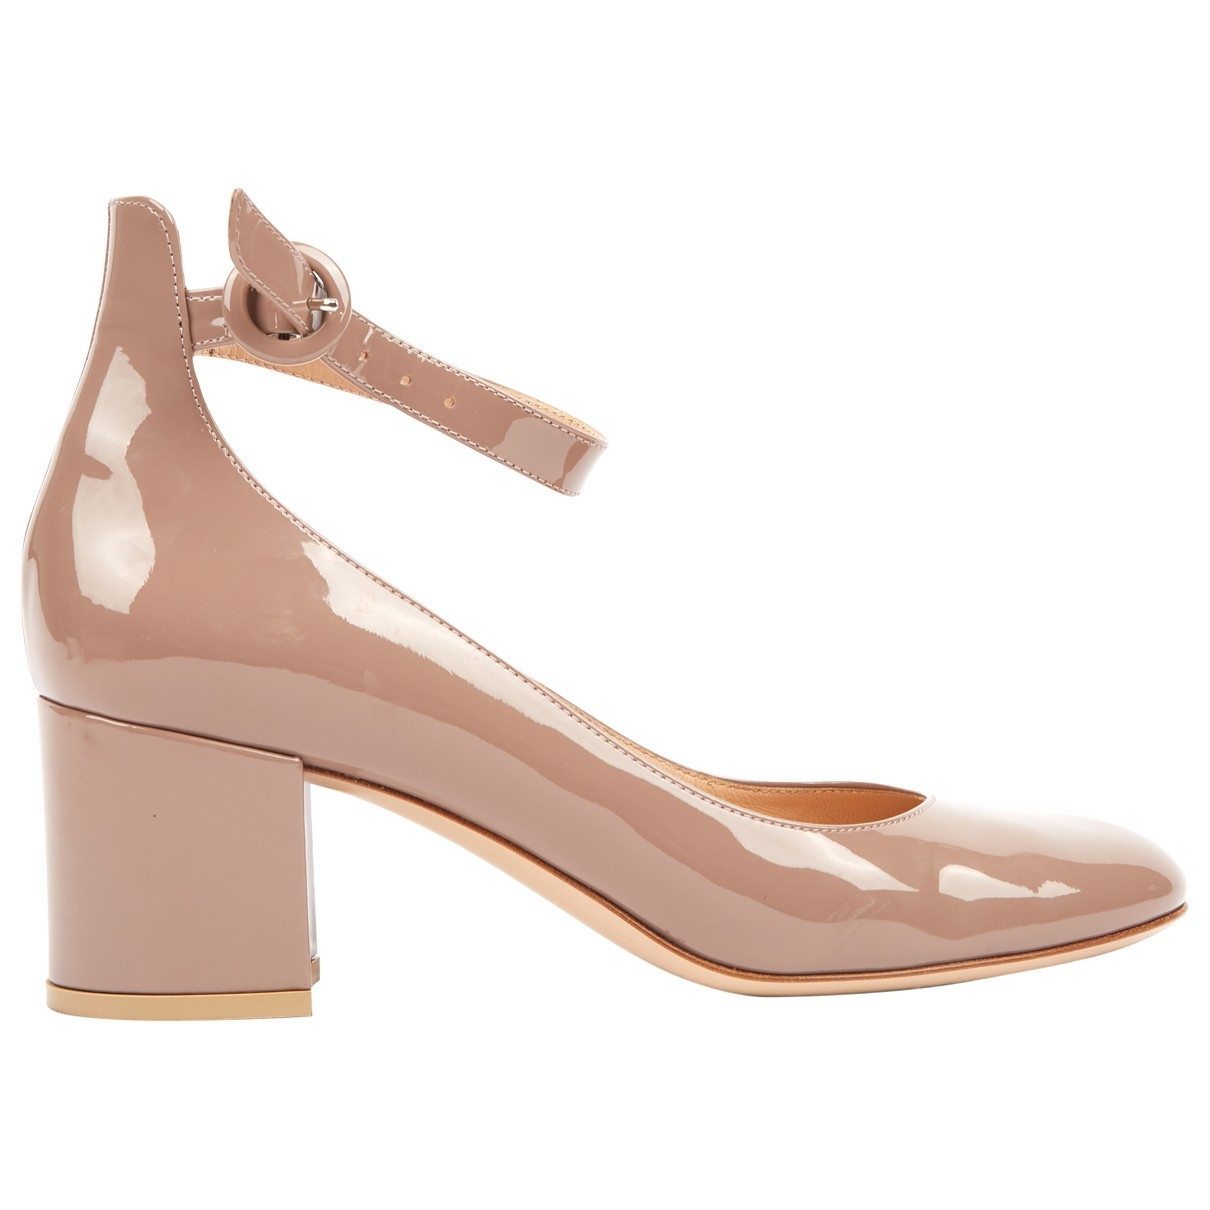 Gianvito Rossi \N Pink Patent leather Mid heel for Women 38 EU